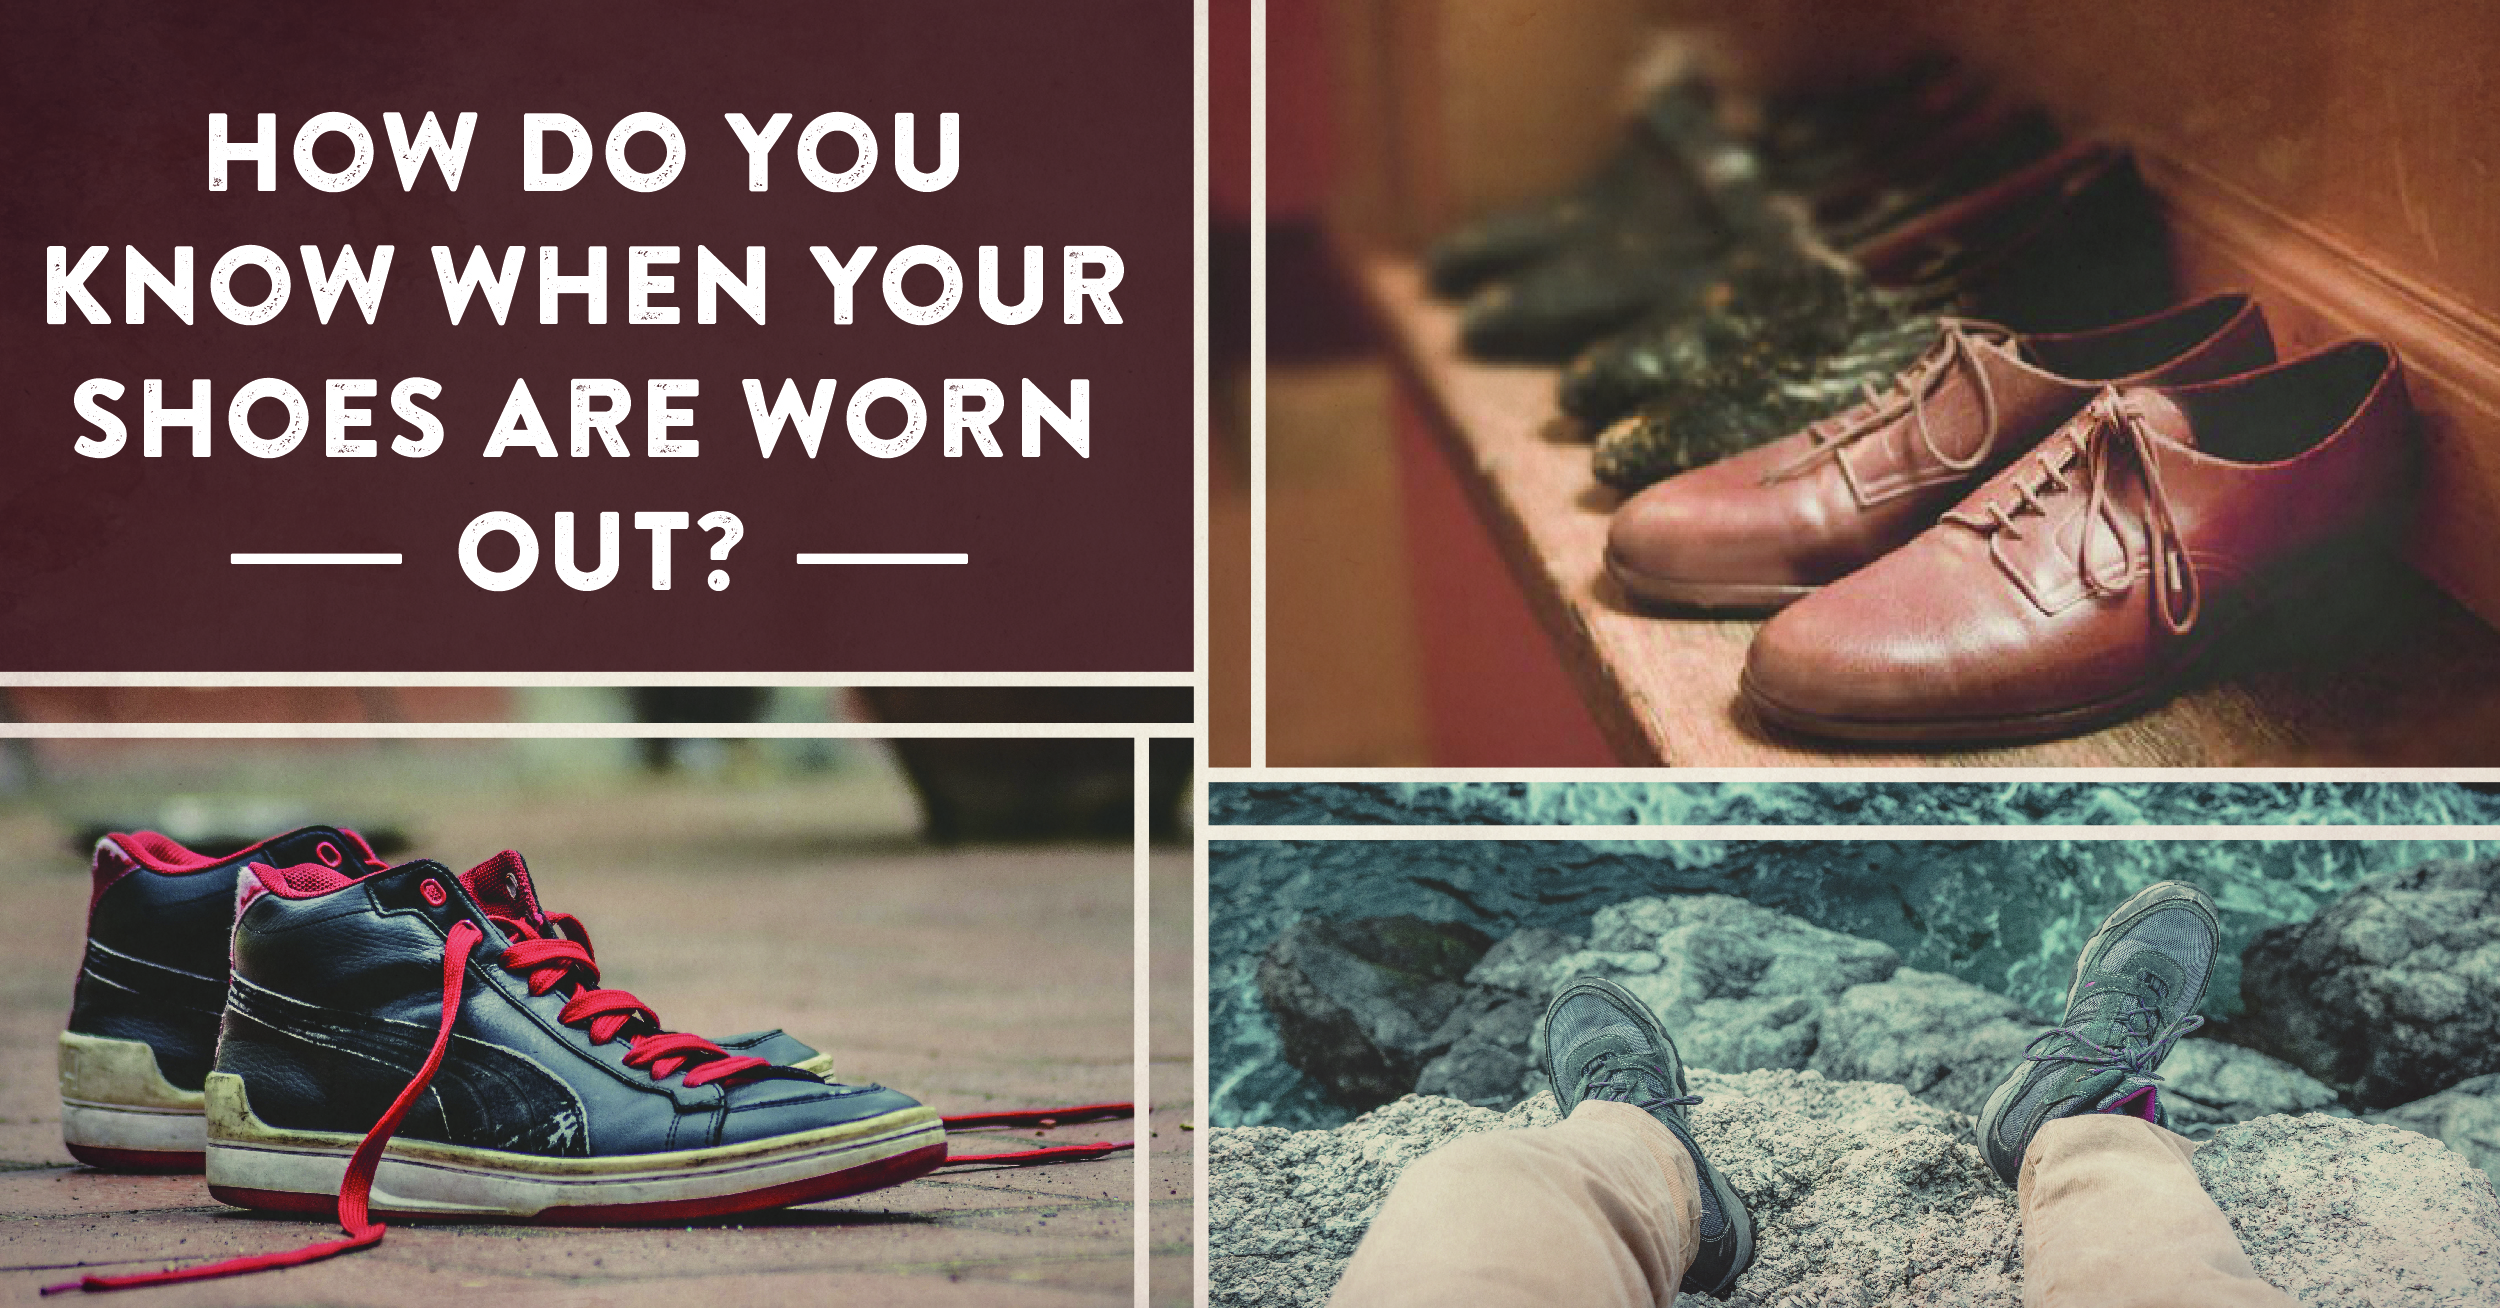 How Do You Know When Your Shoes Are Worn Out?